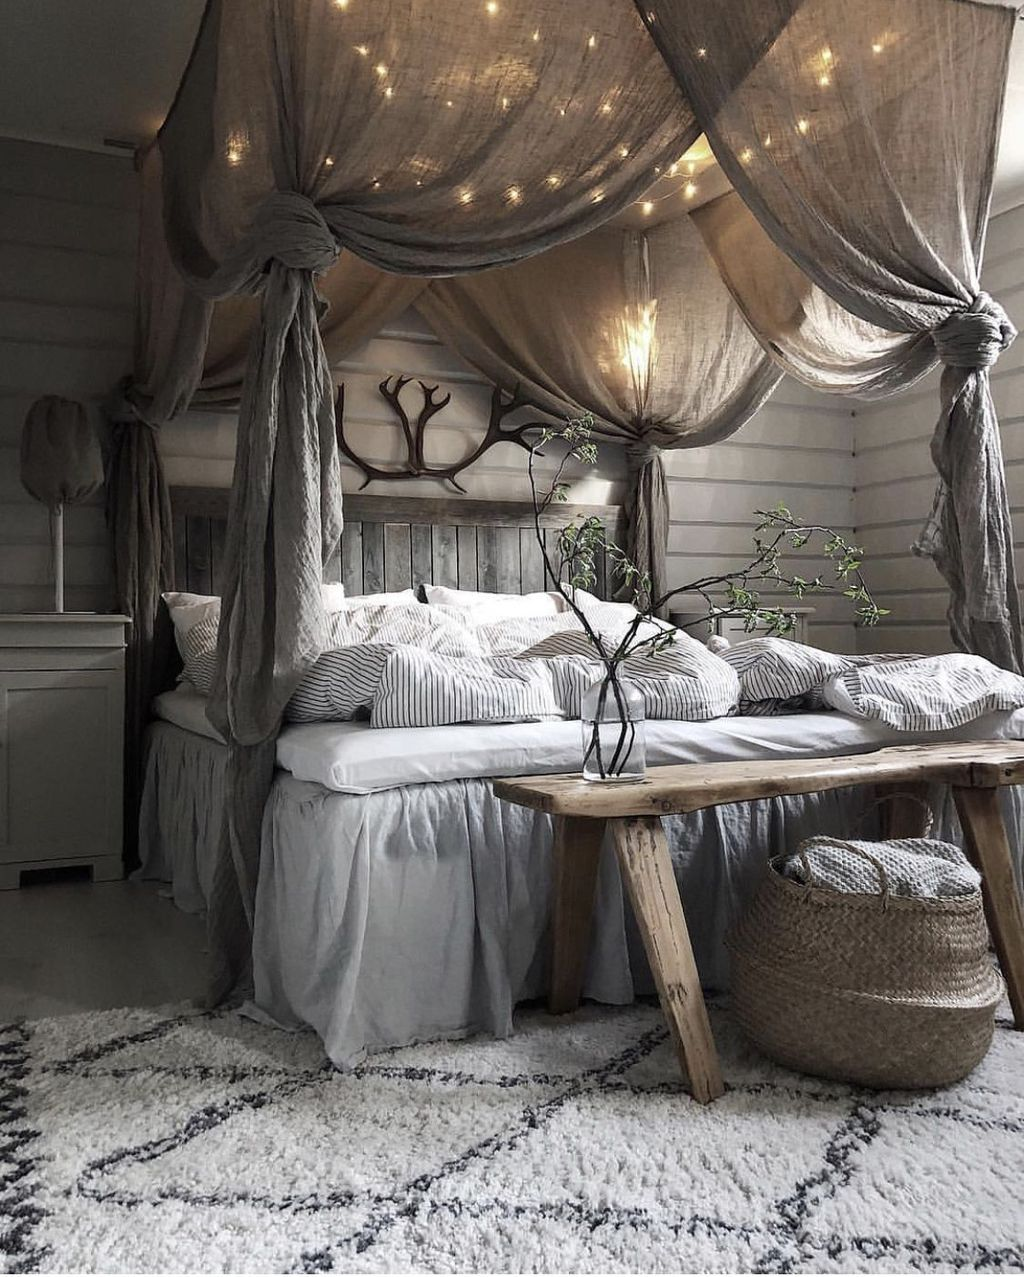 41 Glamorous Canopy Beds Ideas For Romantic Bedroom is part of Glamorous Canopy Beds Ideas For Romantic Bedroom - Ever since I was a child, I have adored canopy beds  Growing up, my parents had a great wrought iron […]